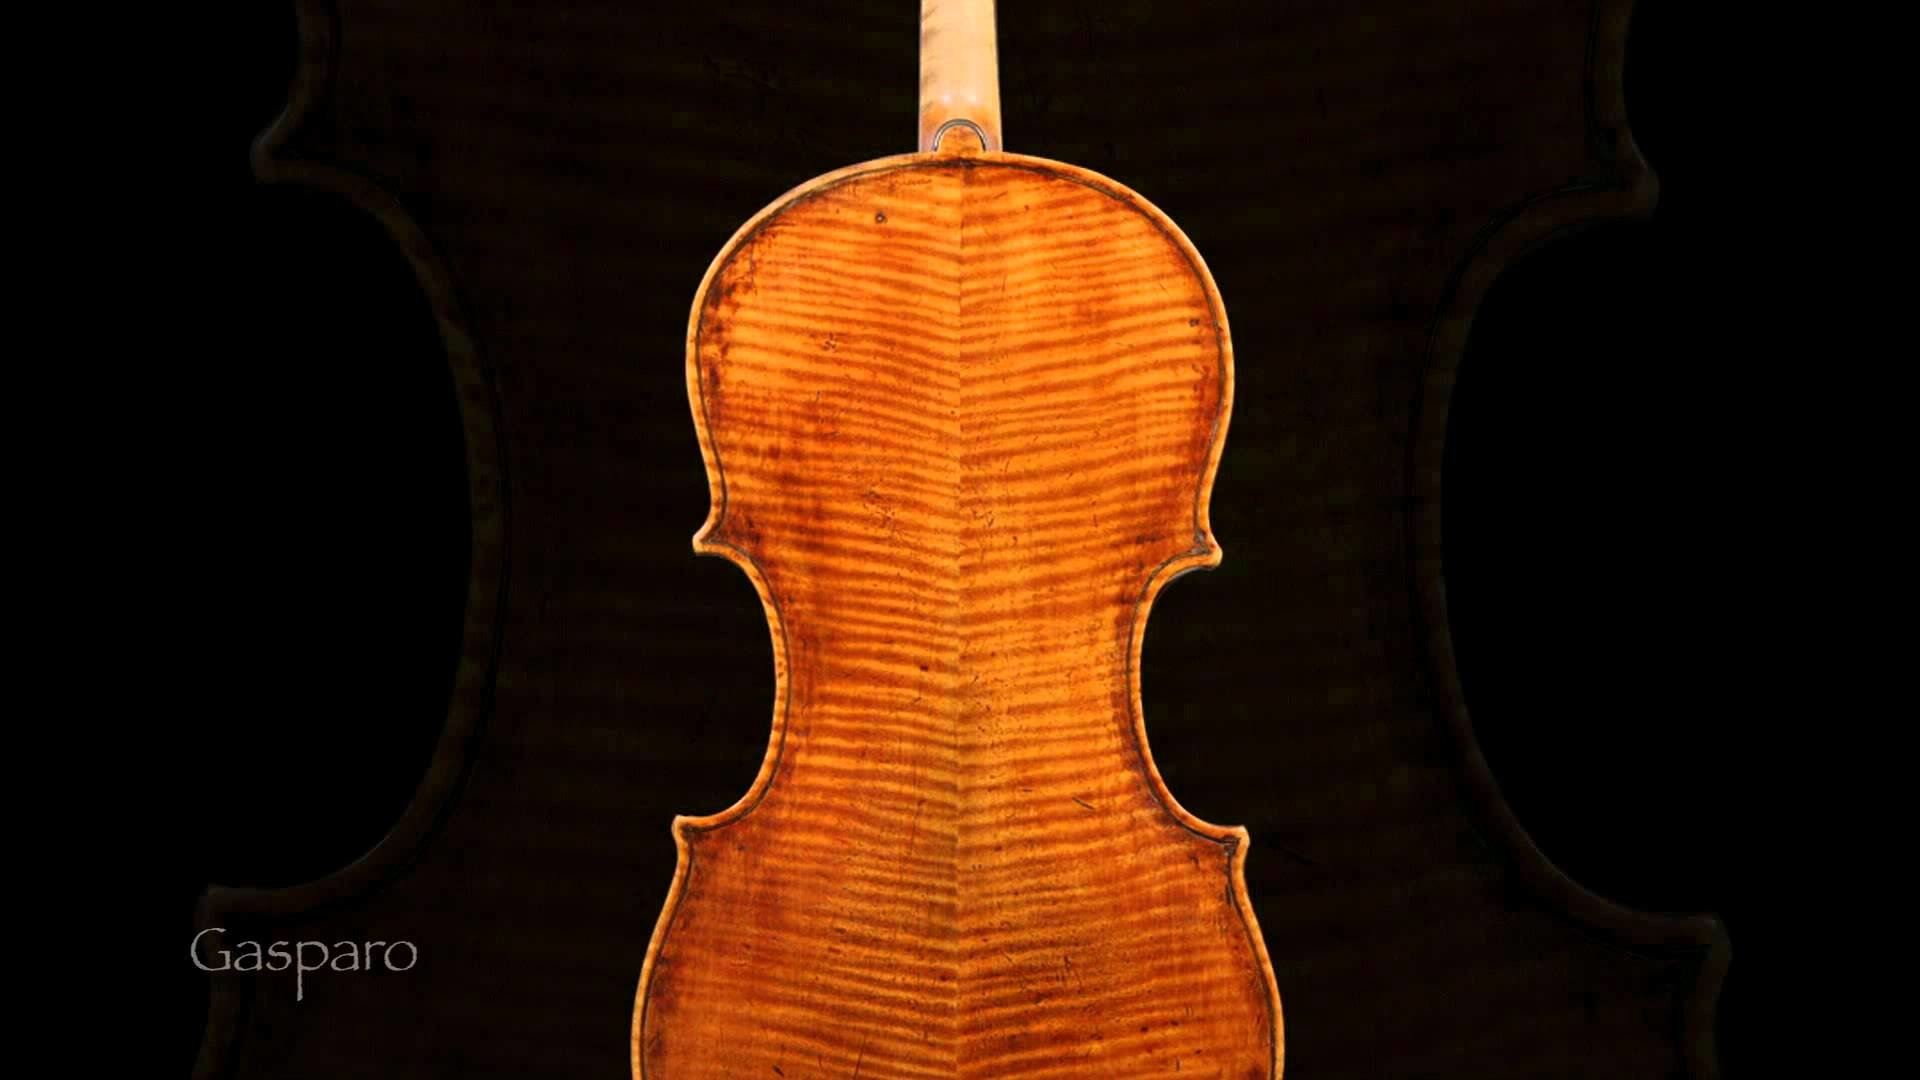 Awesome Violin free wallpaper ID:53549 for full hd desktop